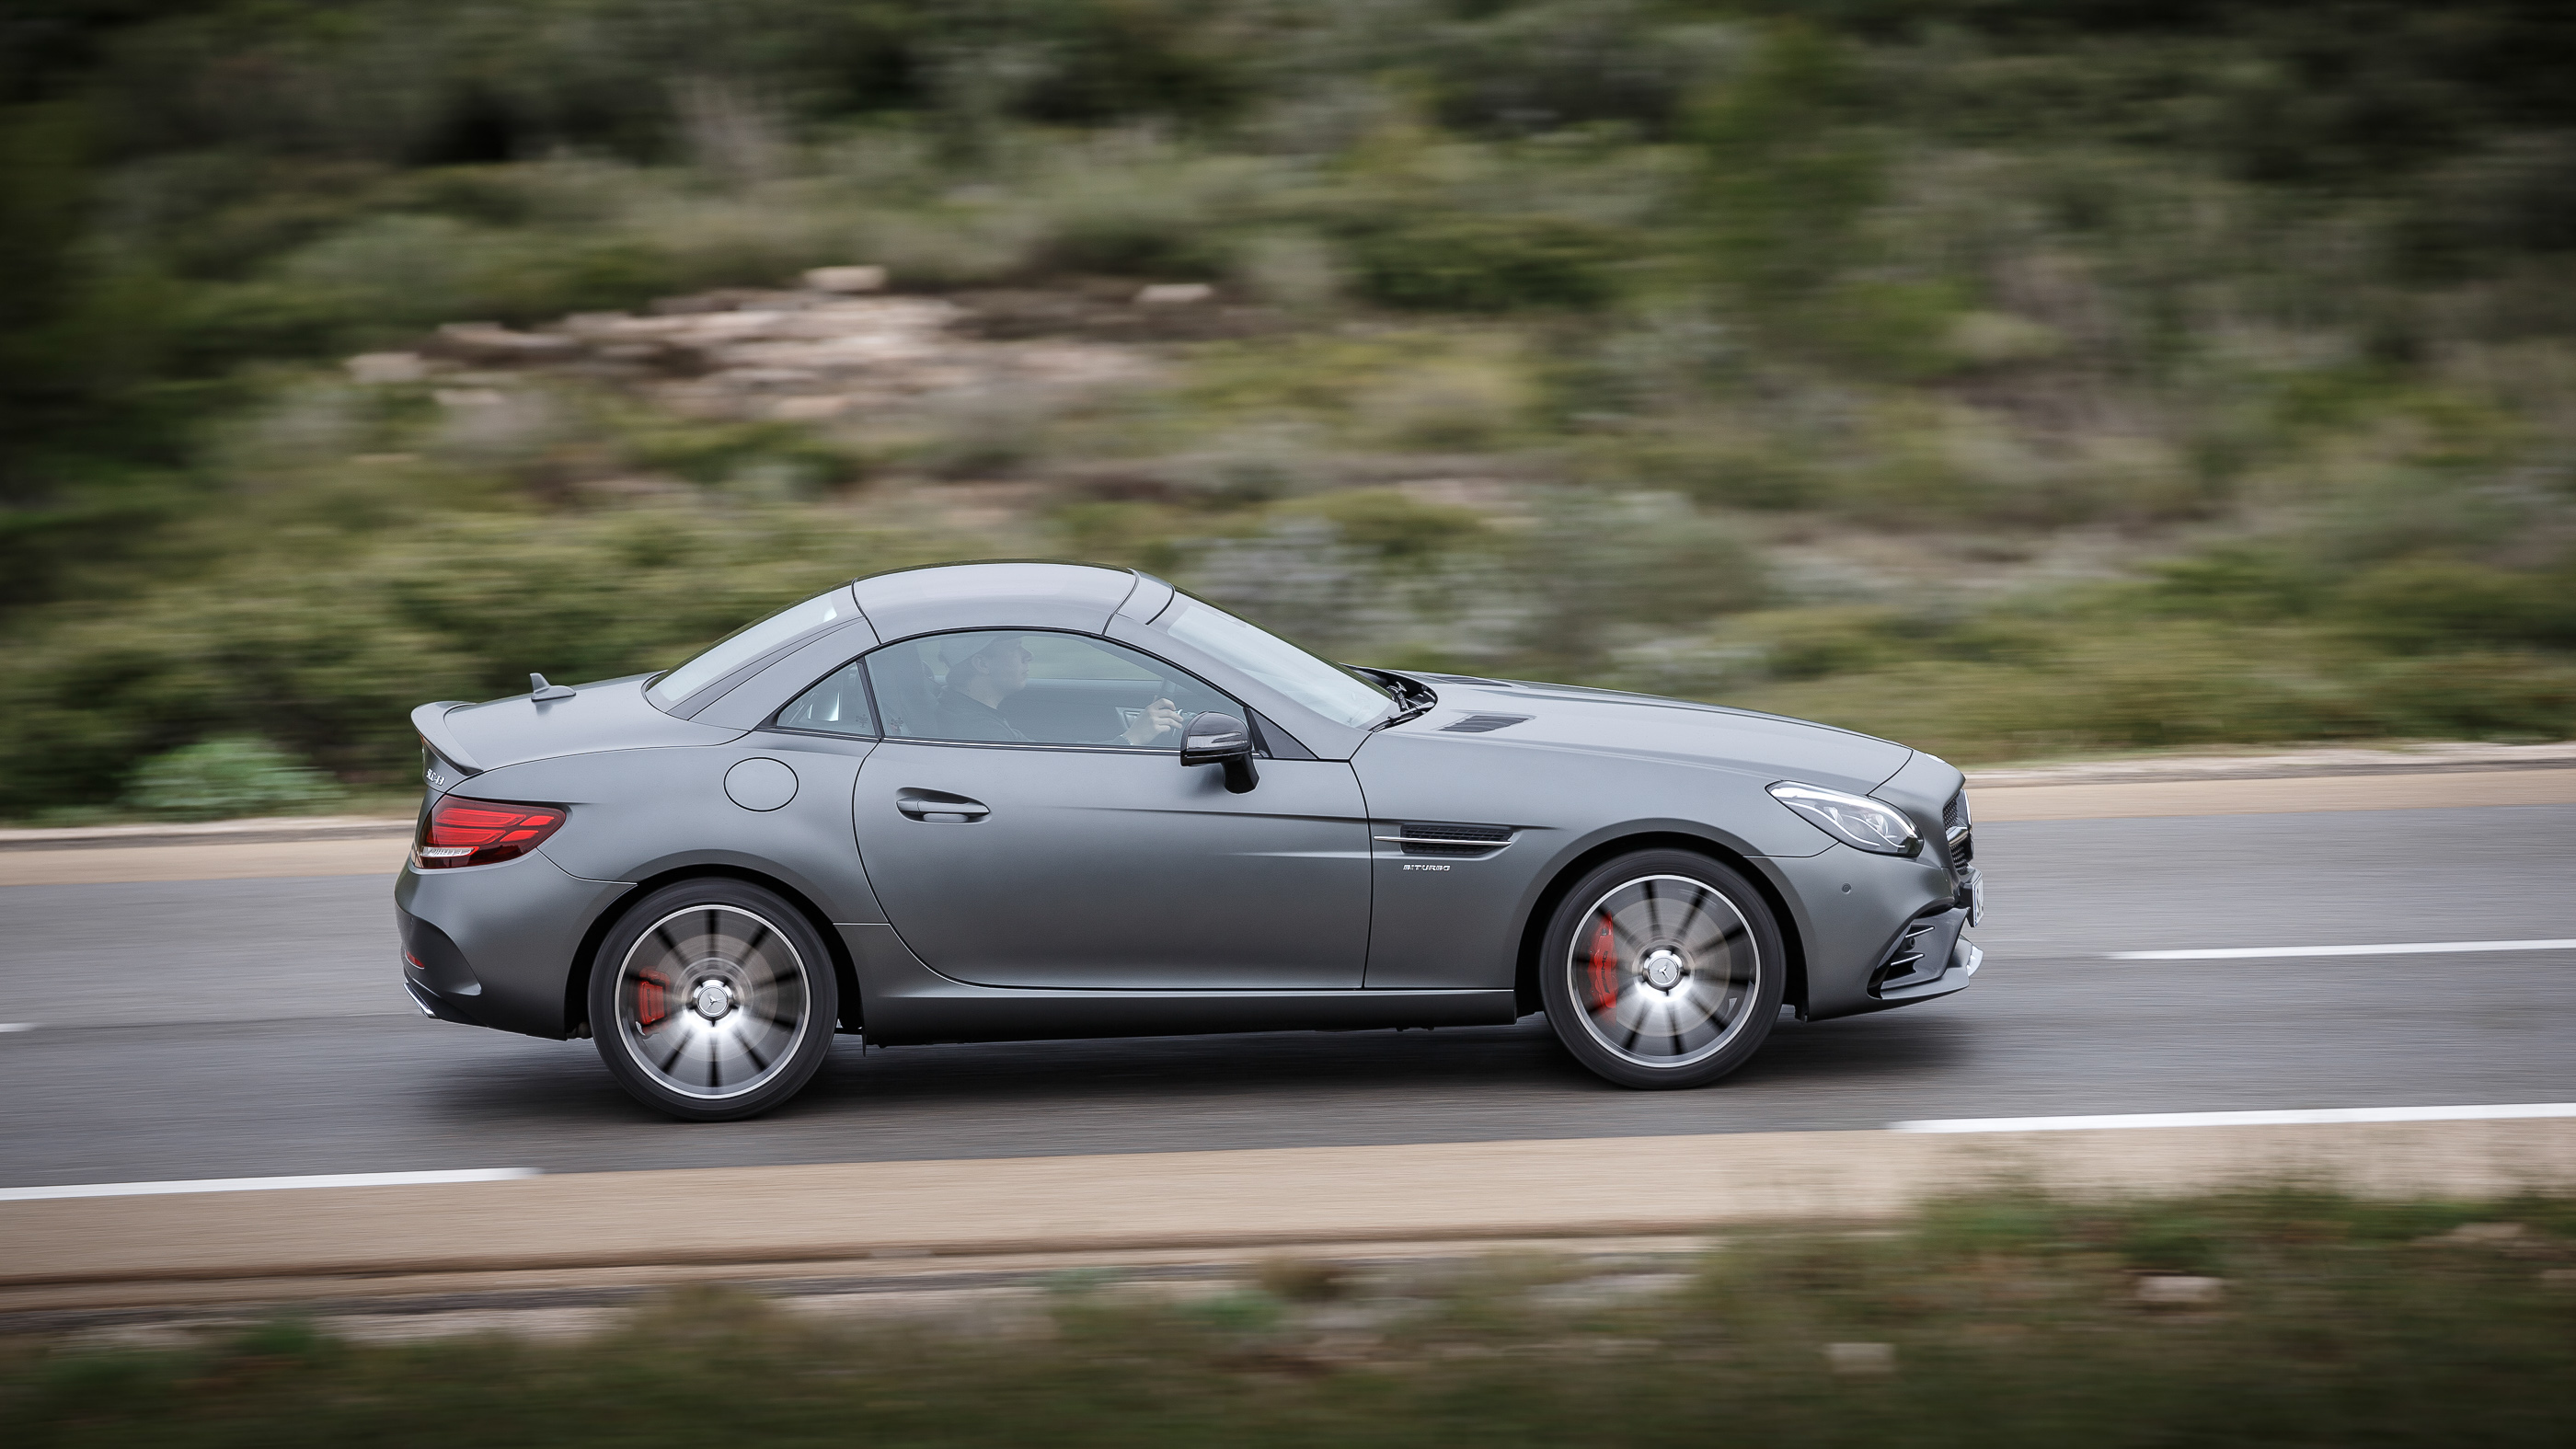 2016 mercedes benz slc review slc300 and slc43 amg for Mercedes benz in paramus